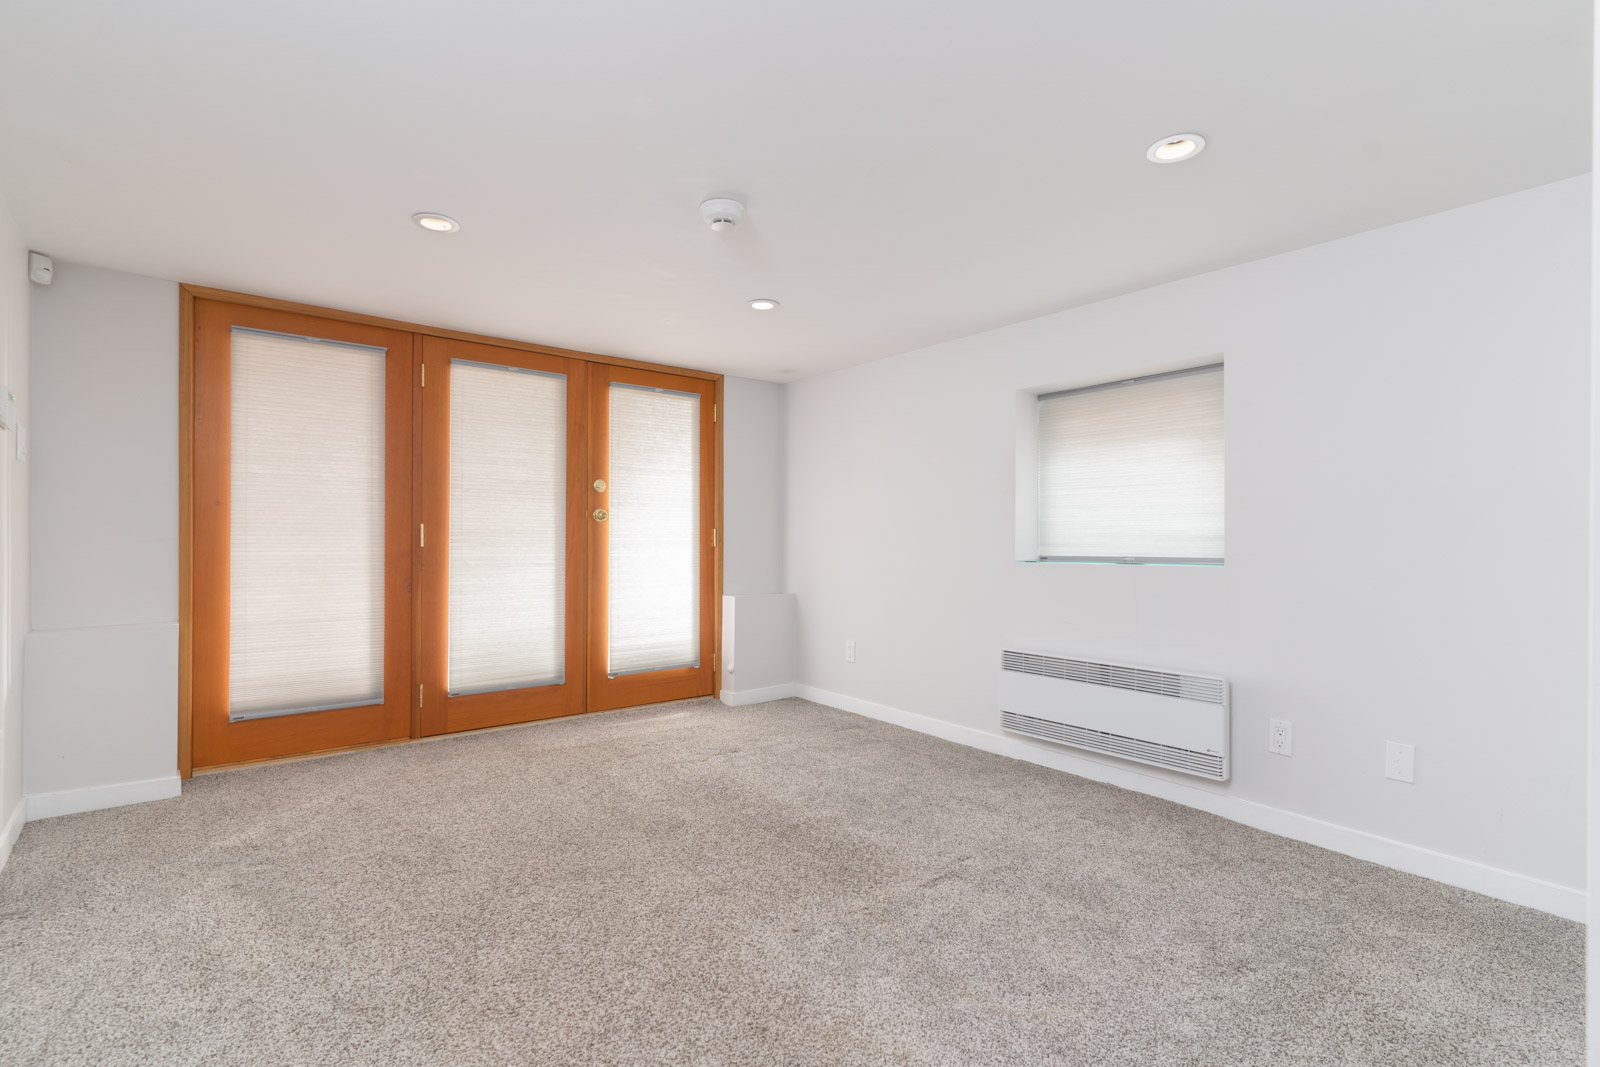 Wide bedroom with walk-in-closet in a basement home in Vancouver